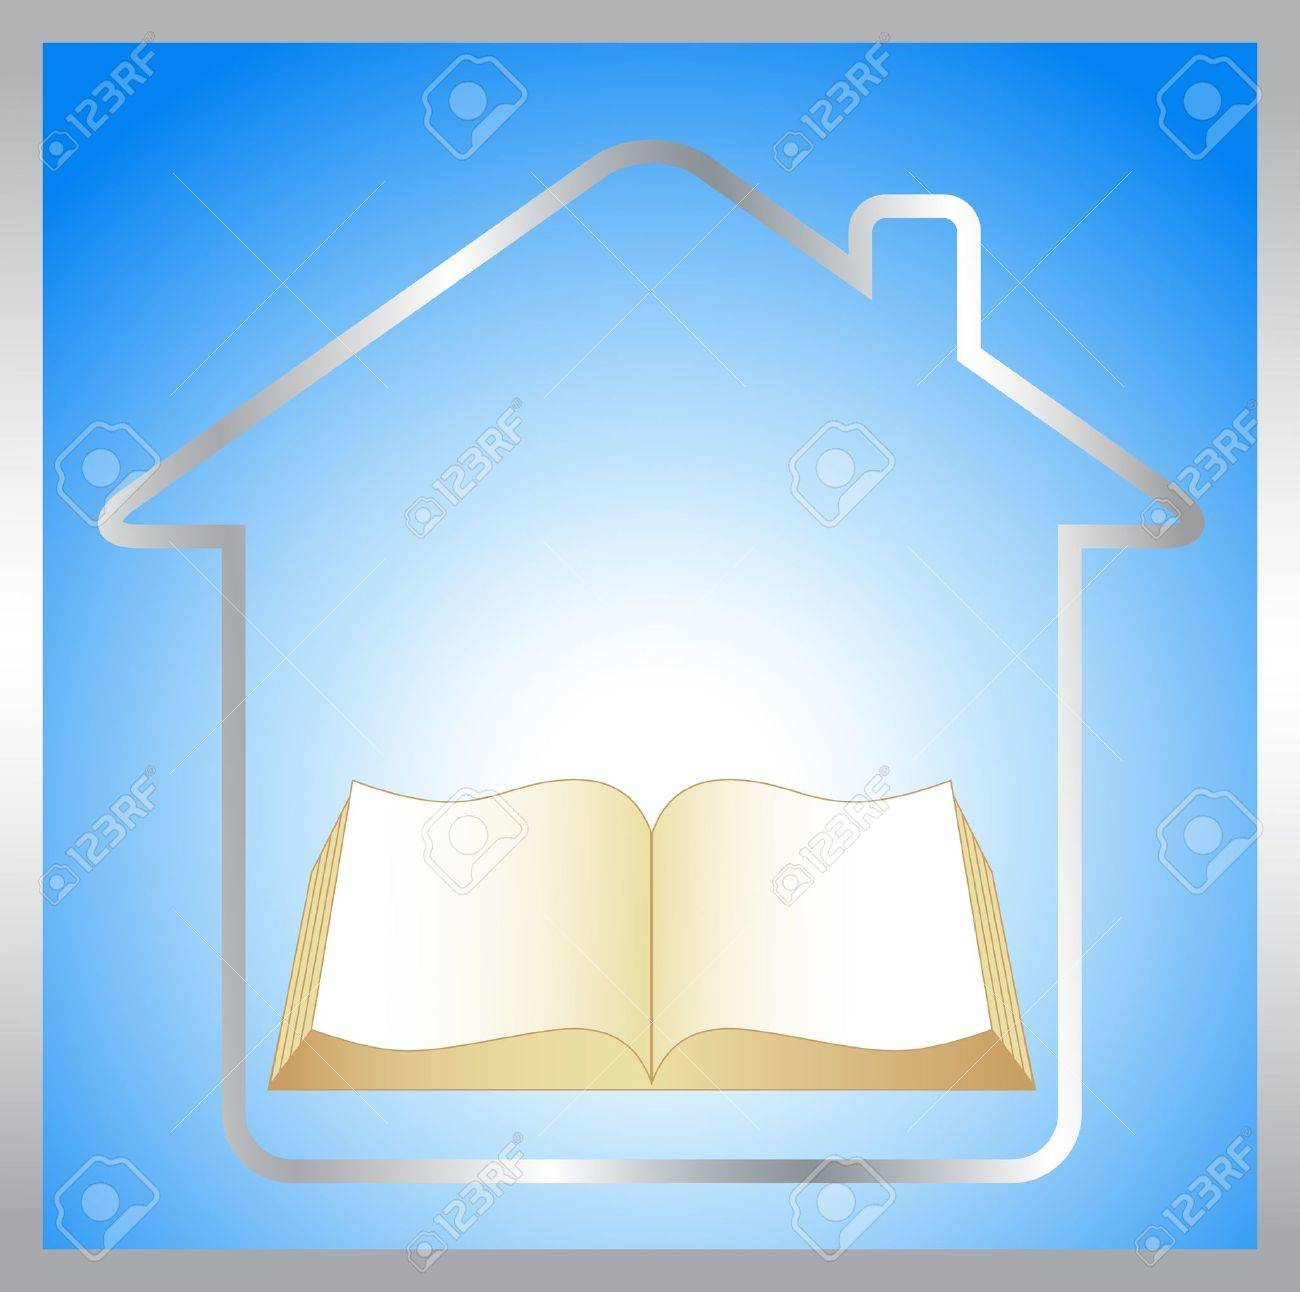 sign with book, house and sunrise - symbol education - 15607707